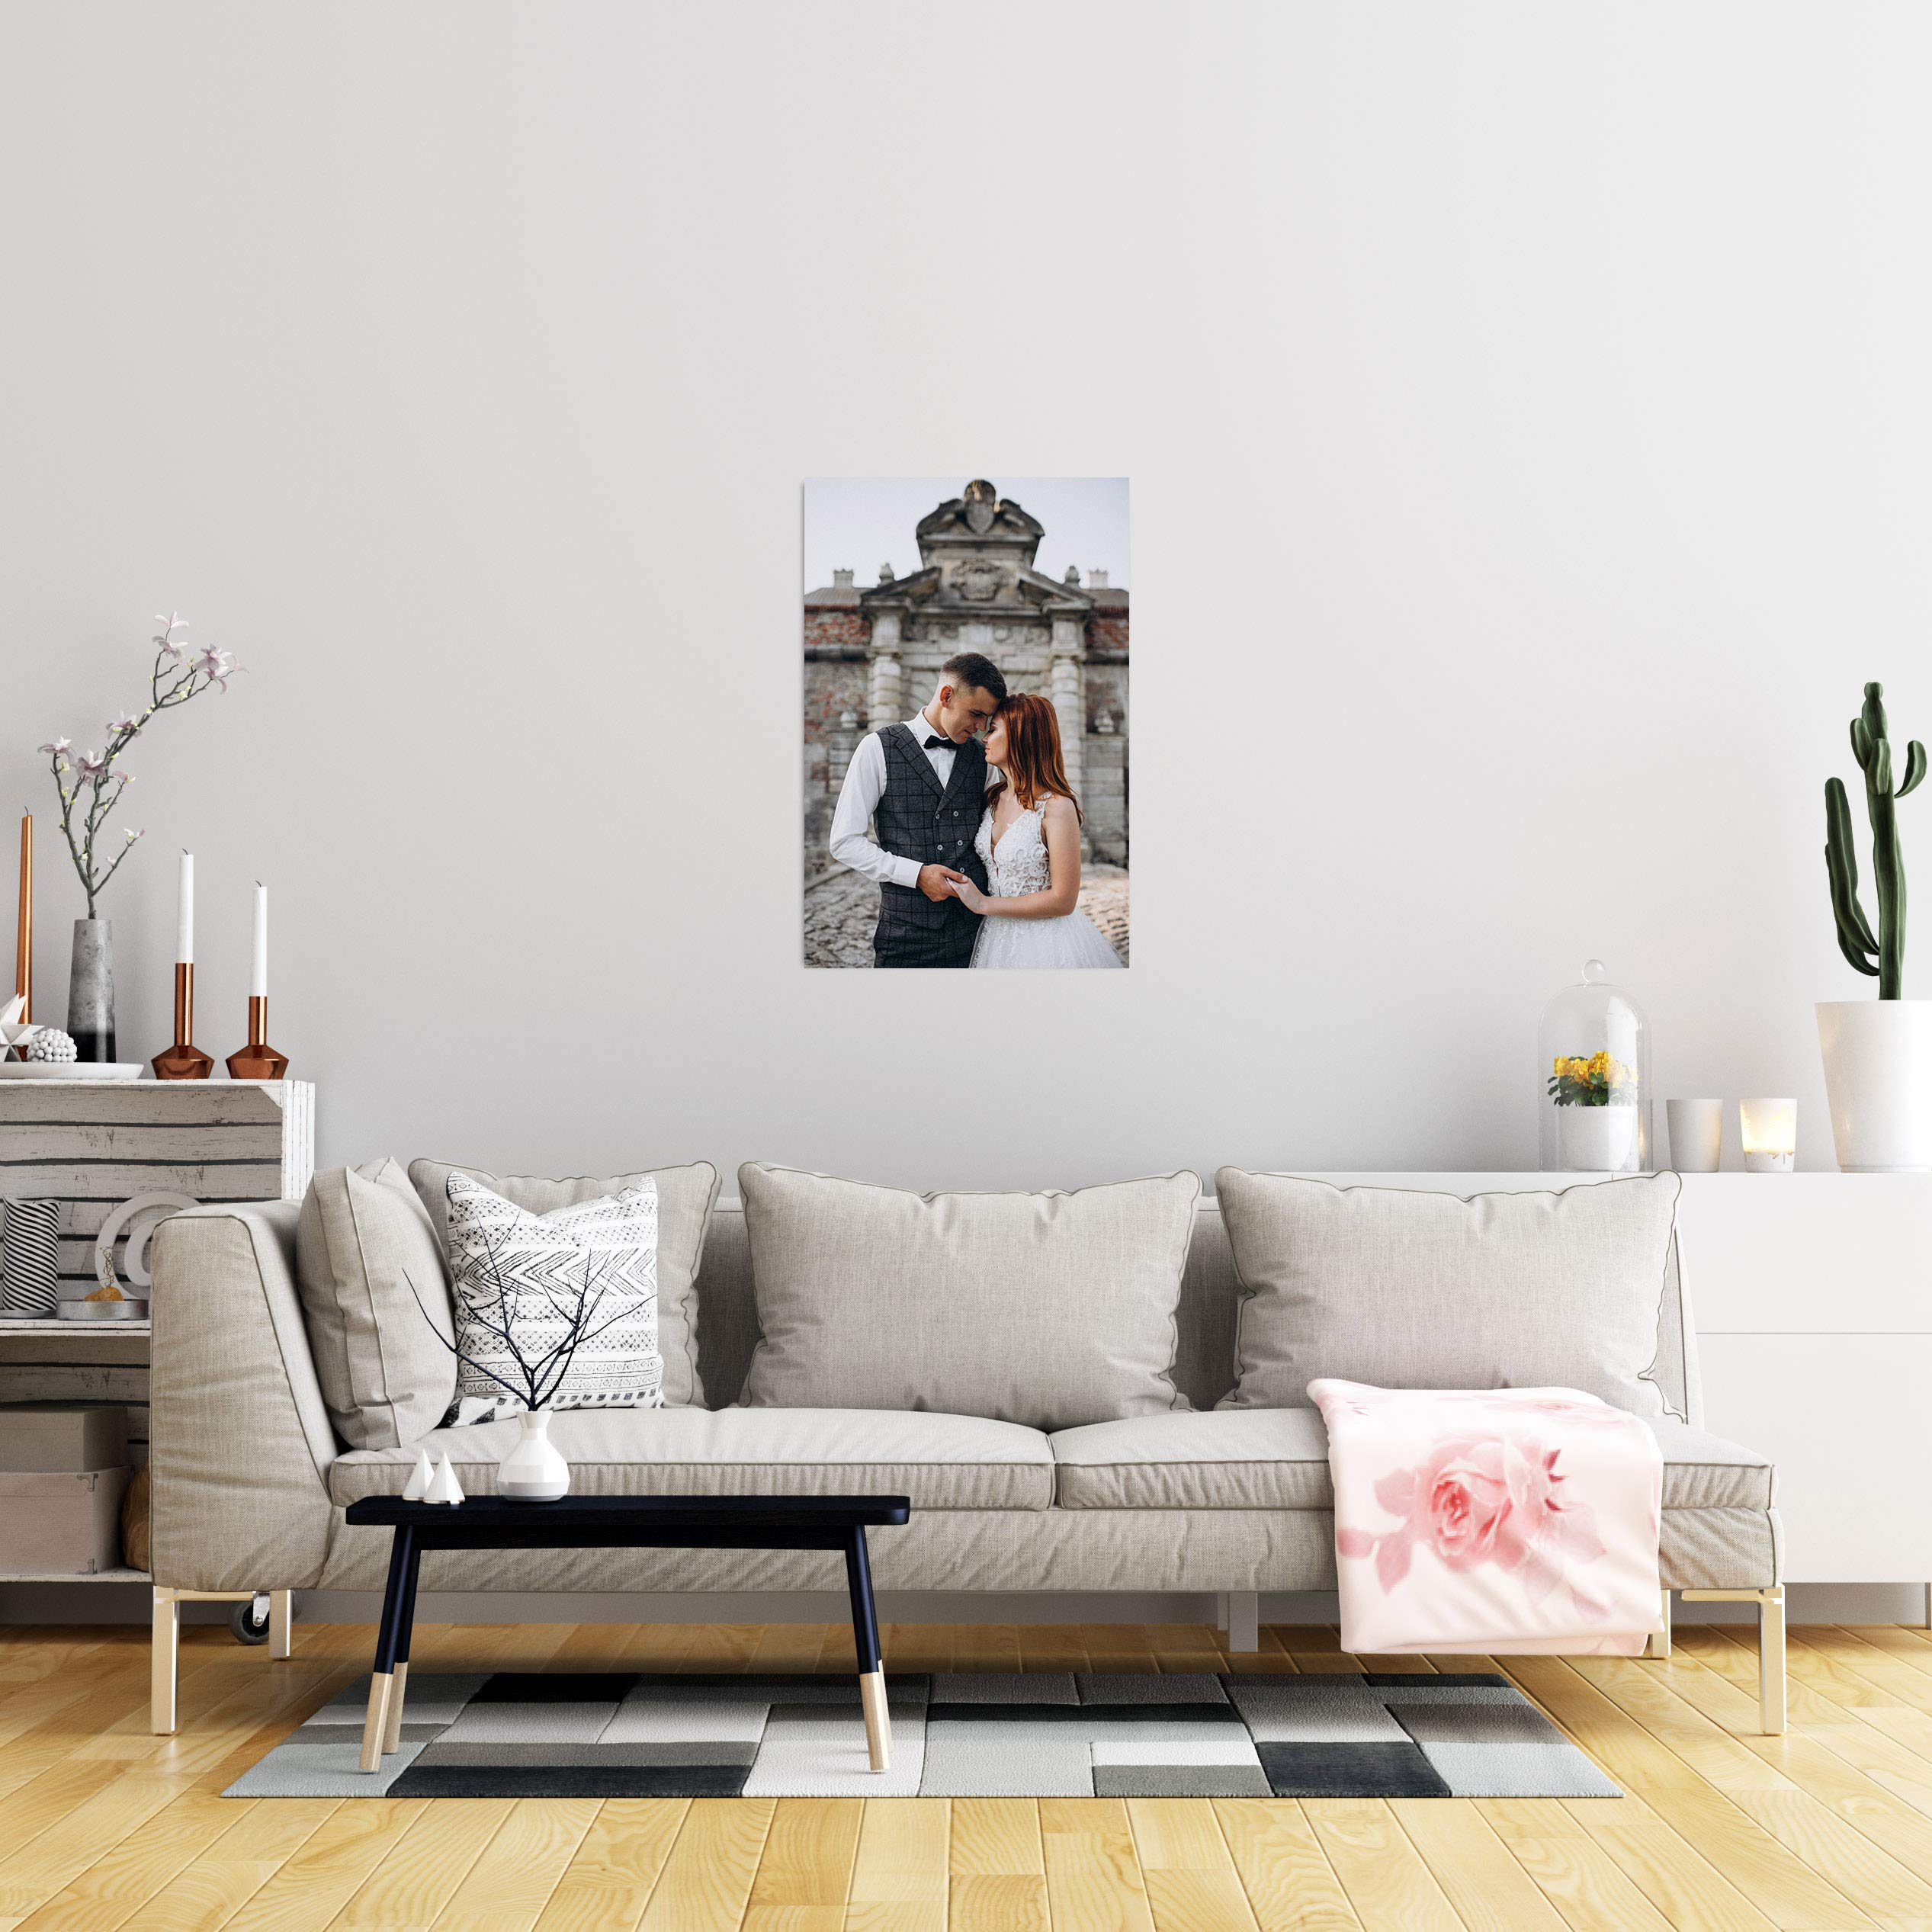 WISE TIGER Custom Canvas Print with Your Own Photos, Personalized Pictures to Canvas Wall Art, Digital Printing (36\